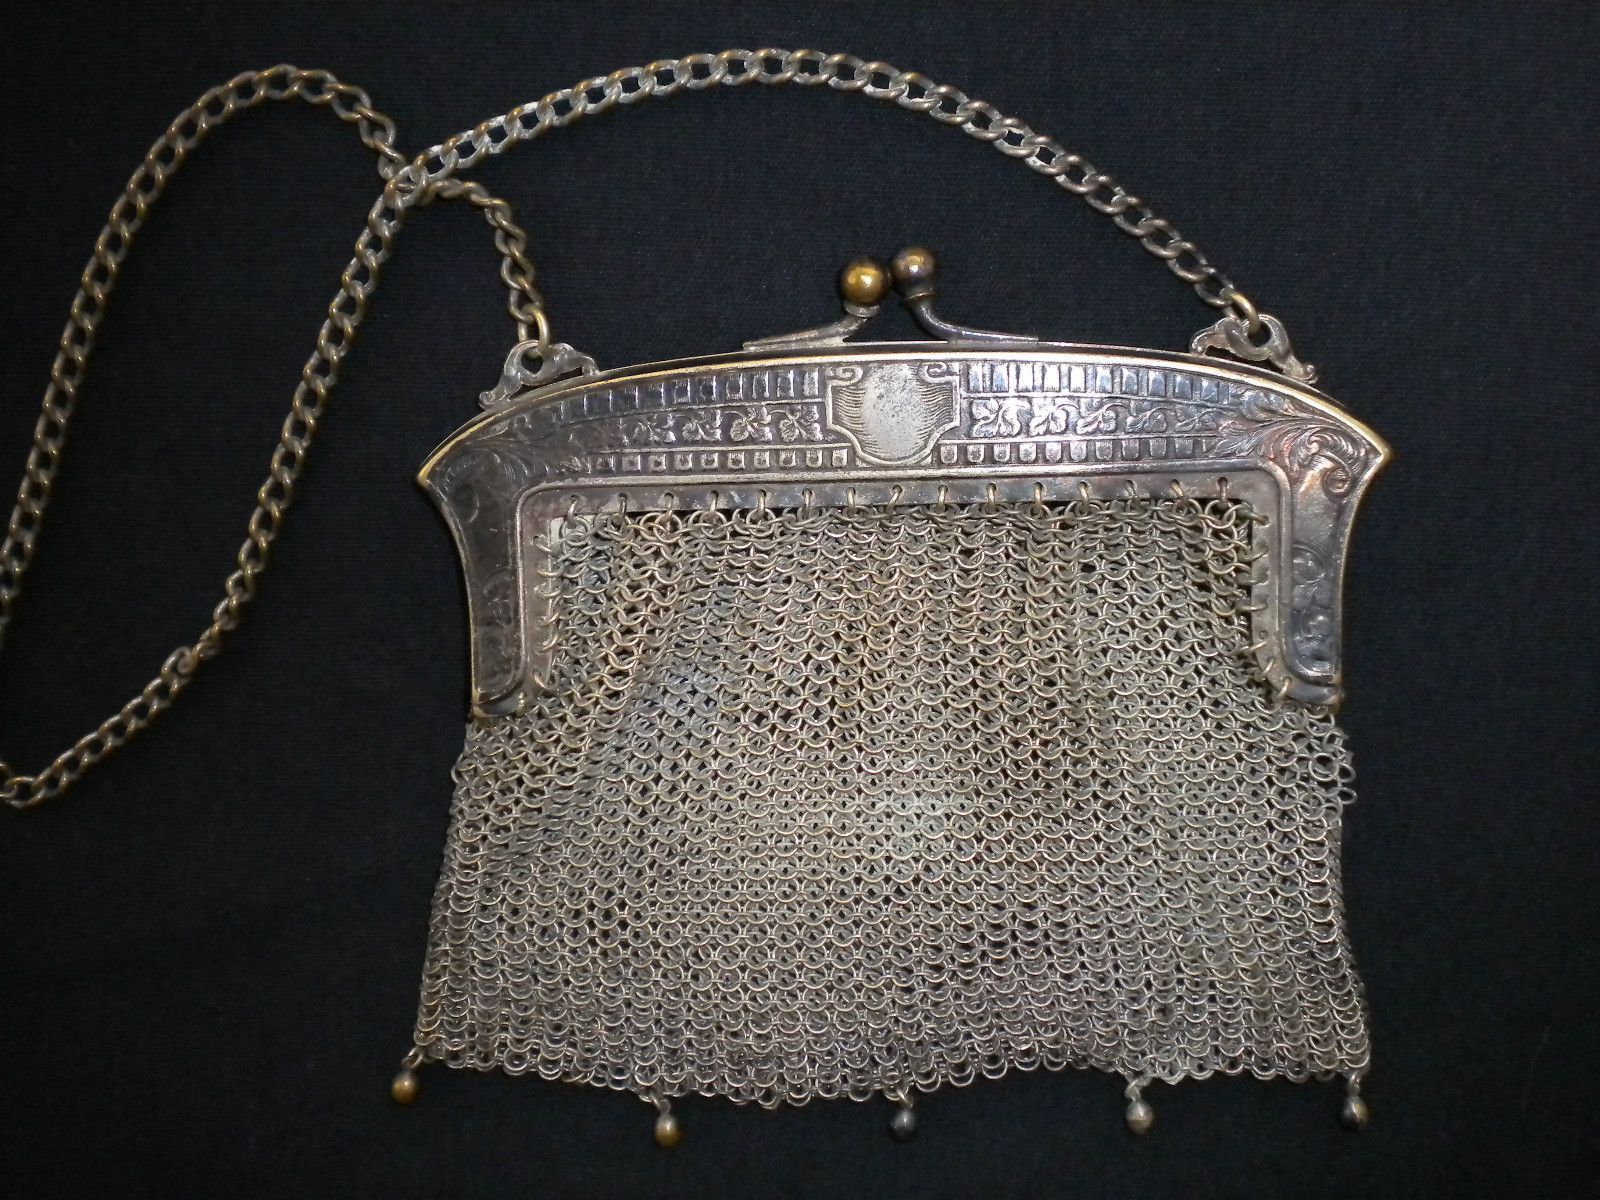 Vintage Antique Metal Chain Mesh Purse Marked German Silver With Ornate Frame Dangles